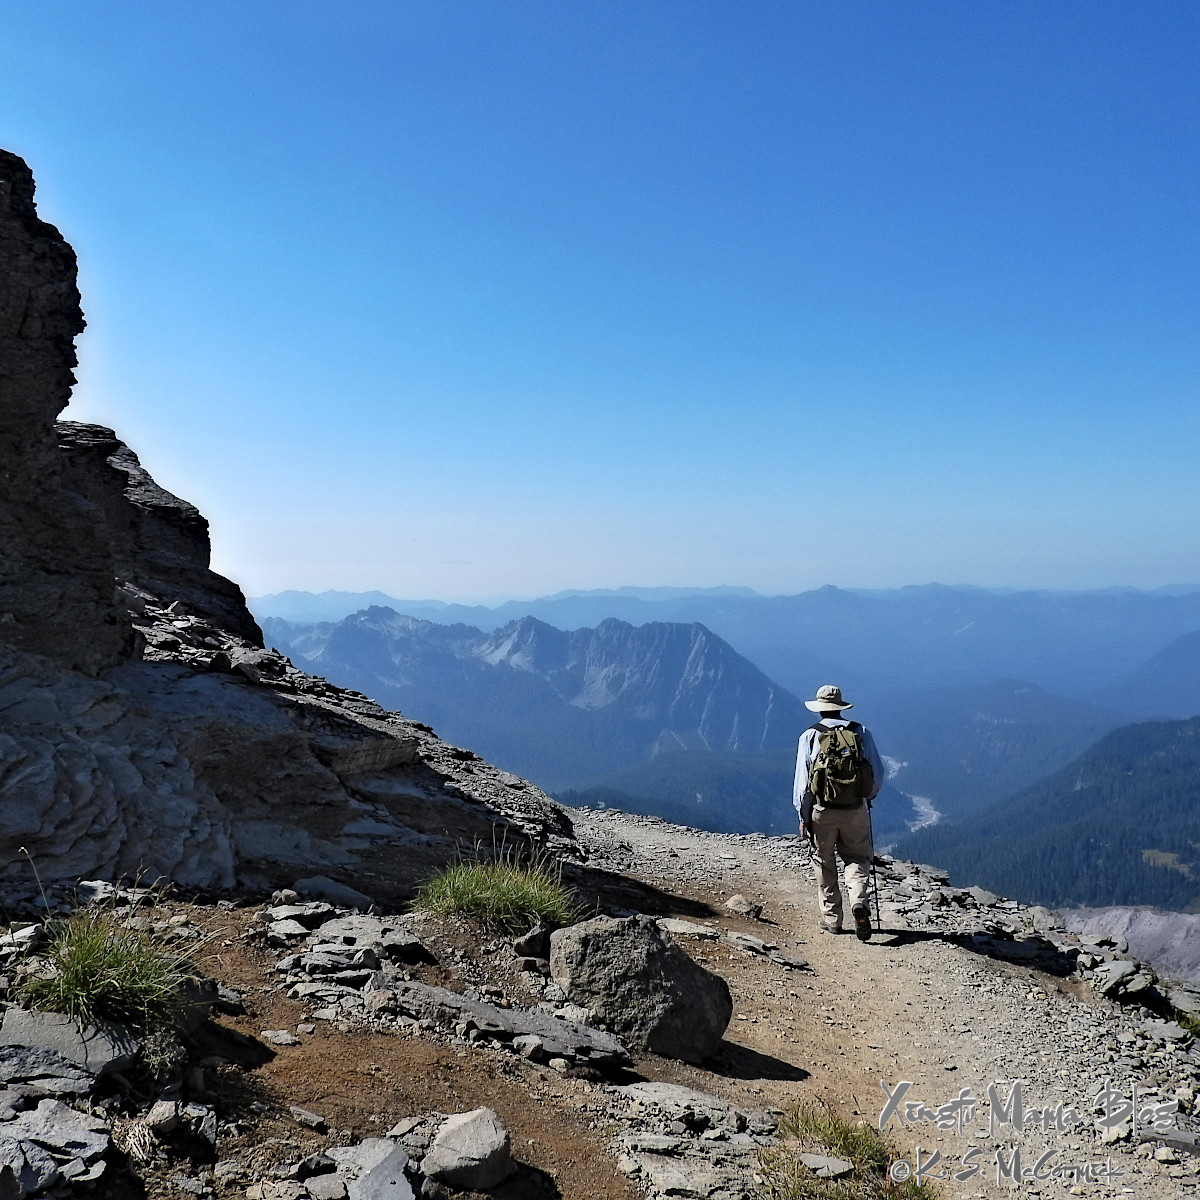 Hiker walking on a narrow trail with views out to the Cascade Mountains.